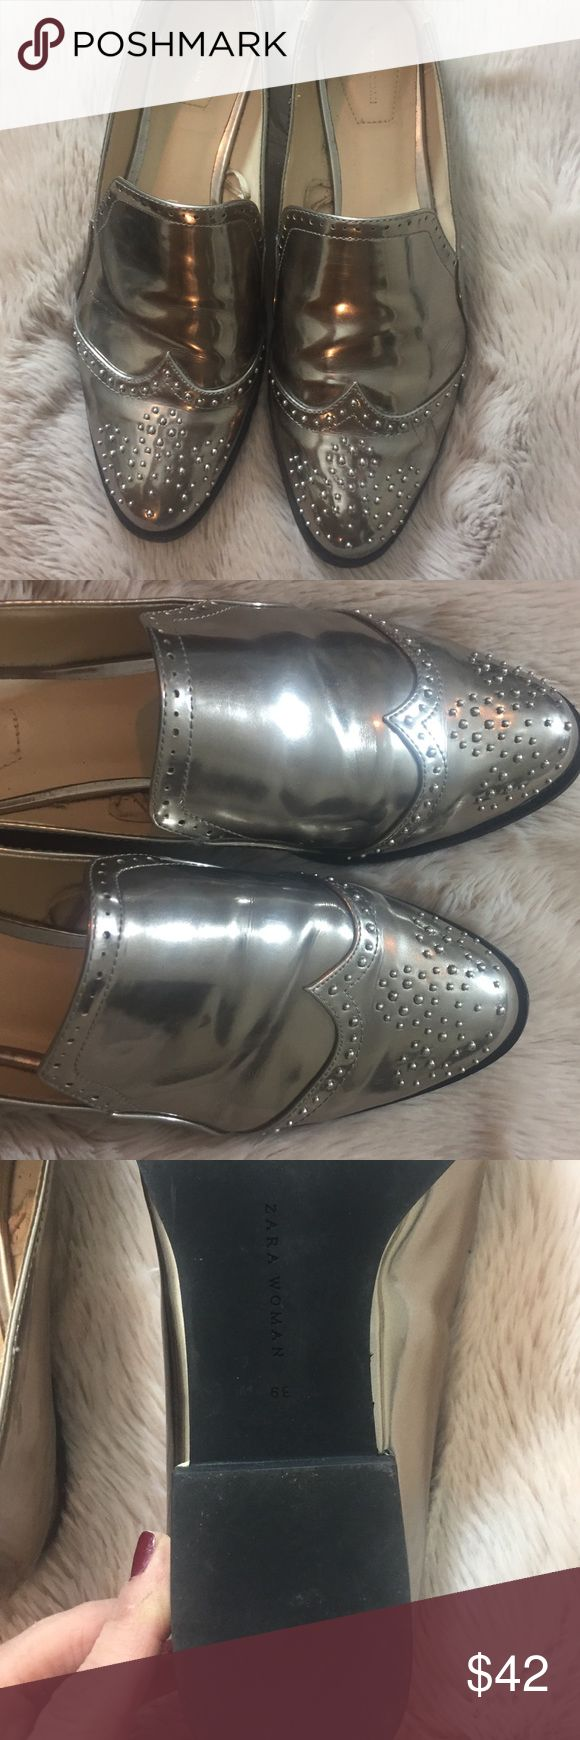 Zara women's silver Oxford shoe Funky silver Oxford shoe by Zara. Definitely a show stopper addition to any outfit! Worn once. I'm usually an 8 and these fit- I find Zara runs just a touch small in shoes. Zara Shoes Flats & Loafers